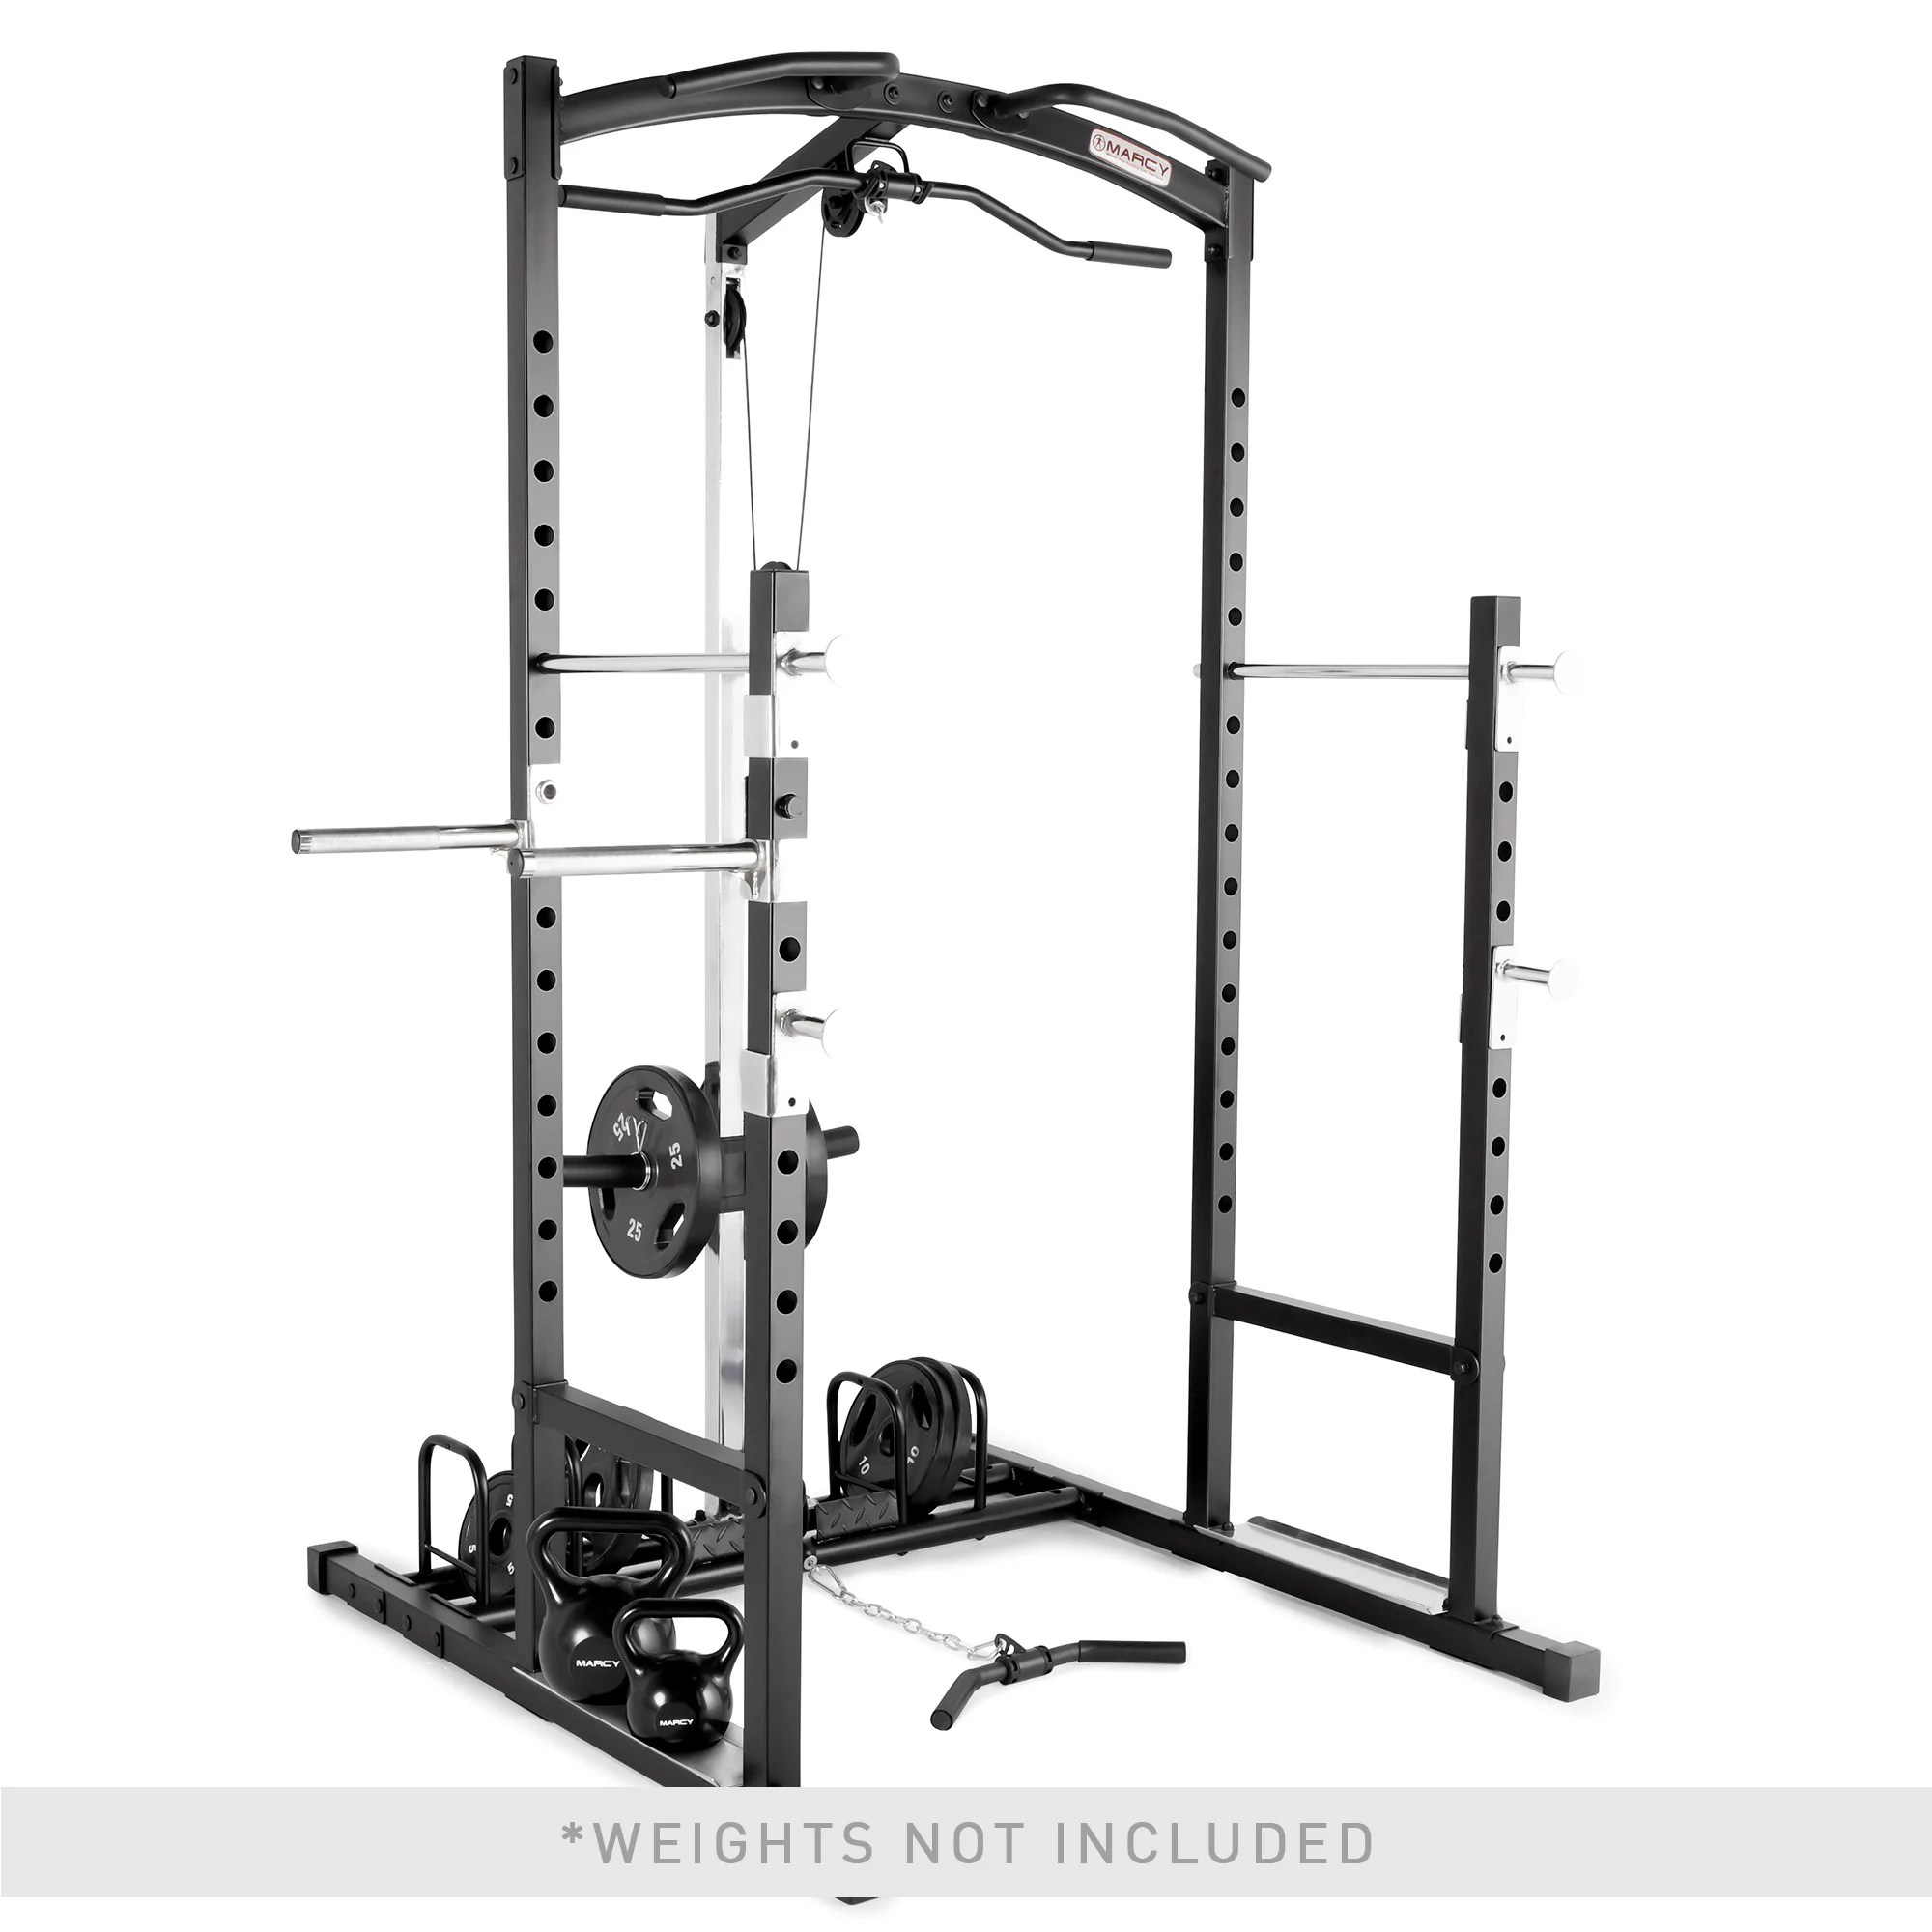 Used Squat Rack For Sale Craigslist : squat, craigslist, Fitness, Olympic, Weight, Curbside, Pickup, DICK'S